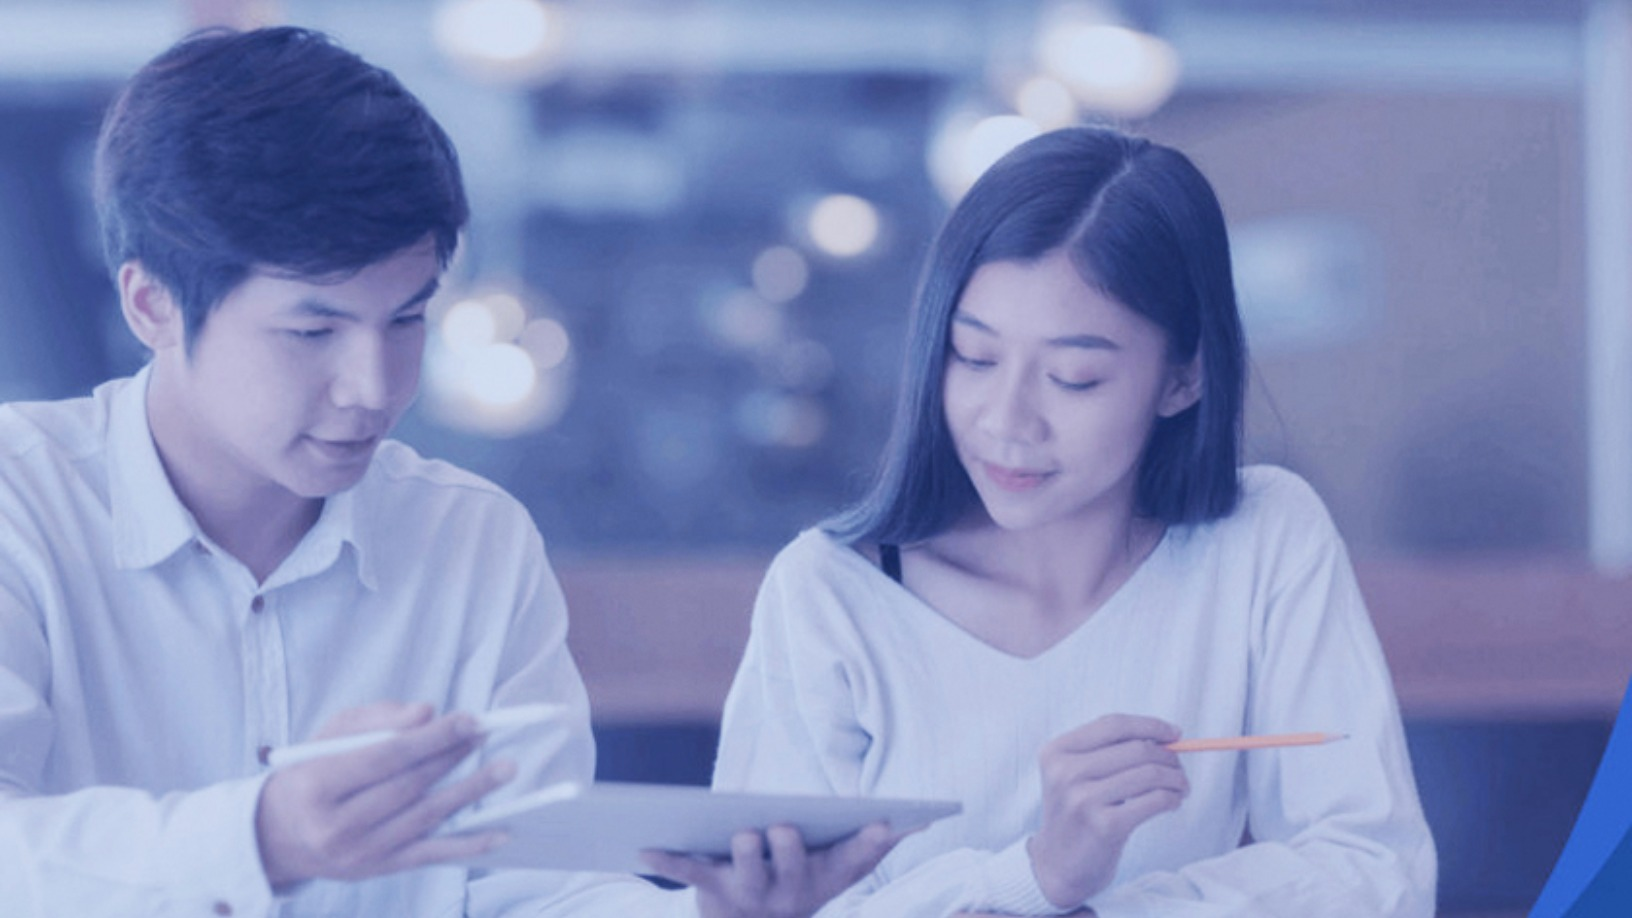 Pintek: Fintech offers wide variety of loans to improve Indonesians' access to education